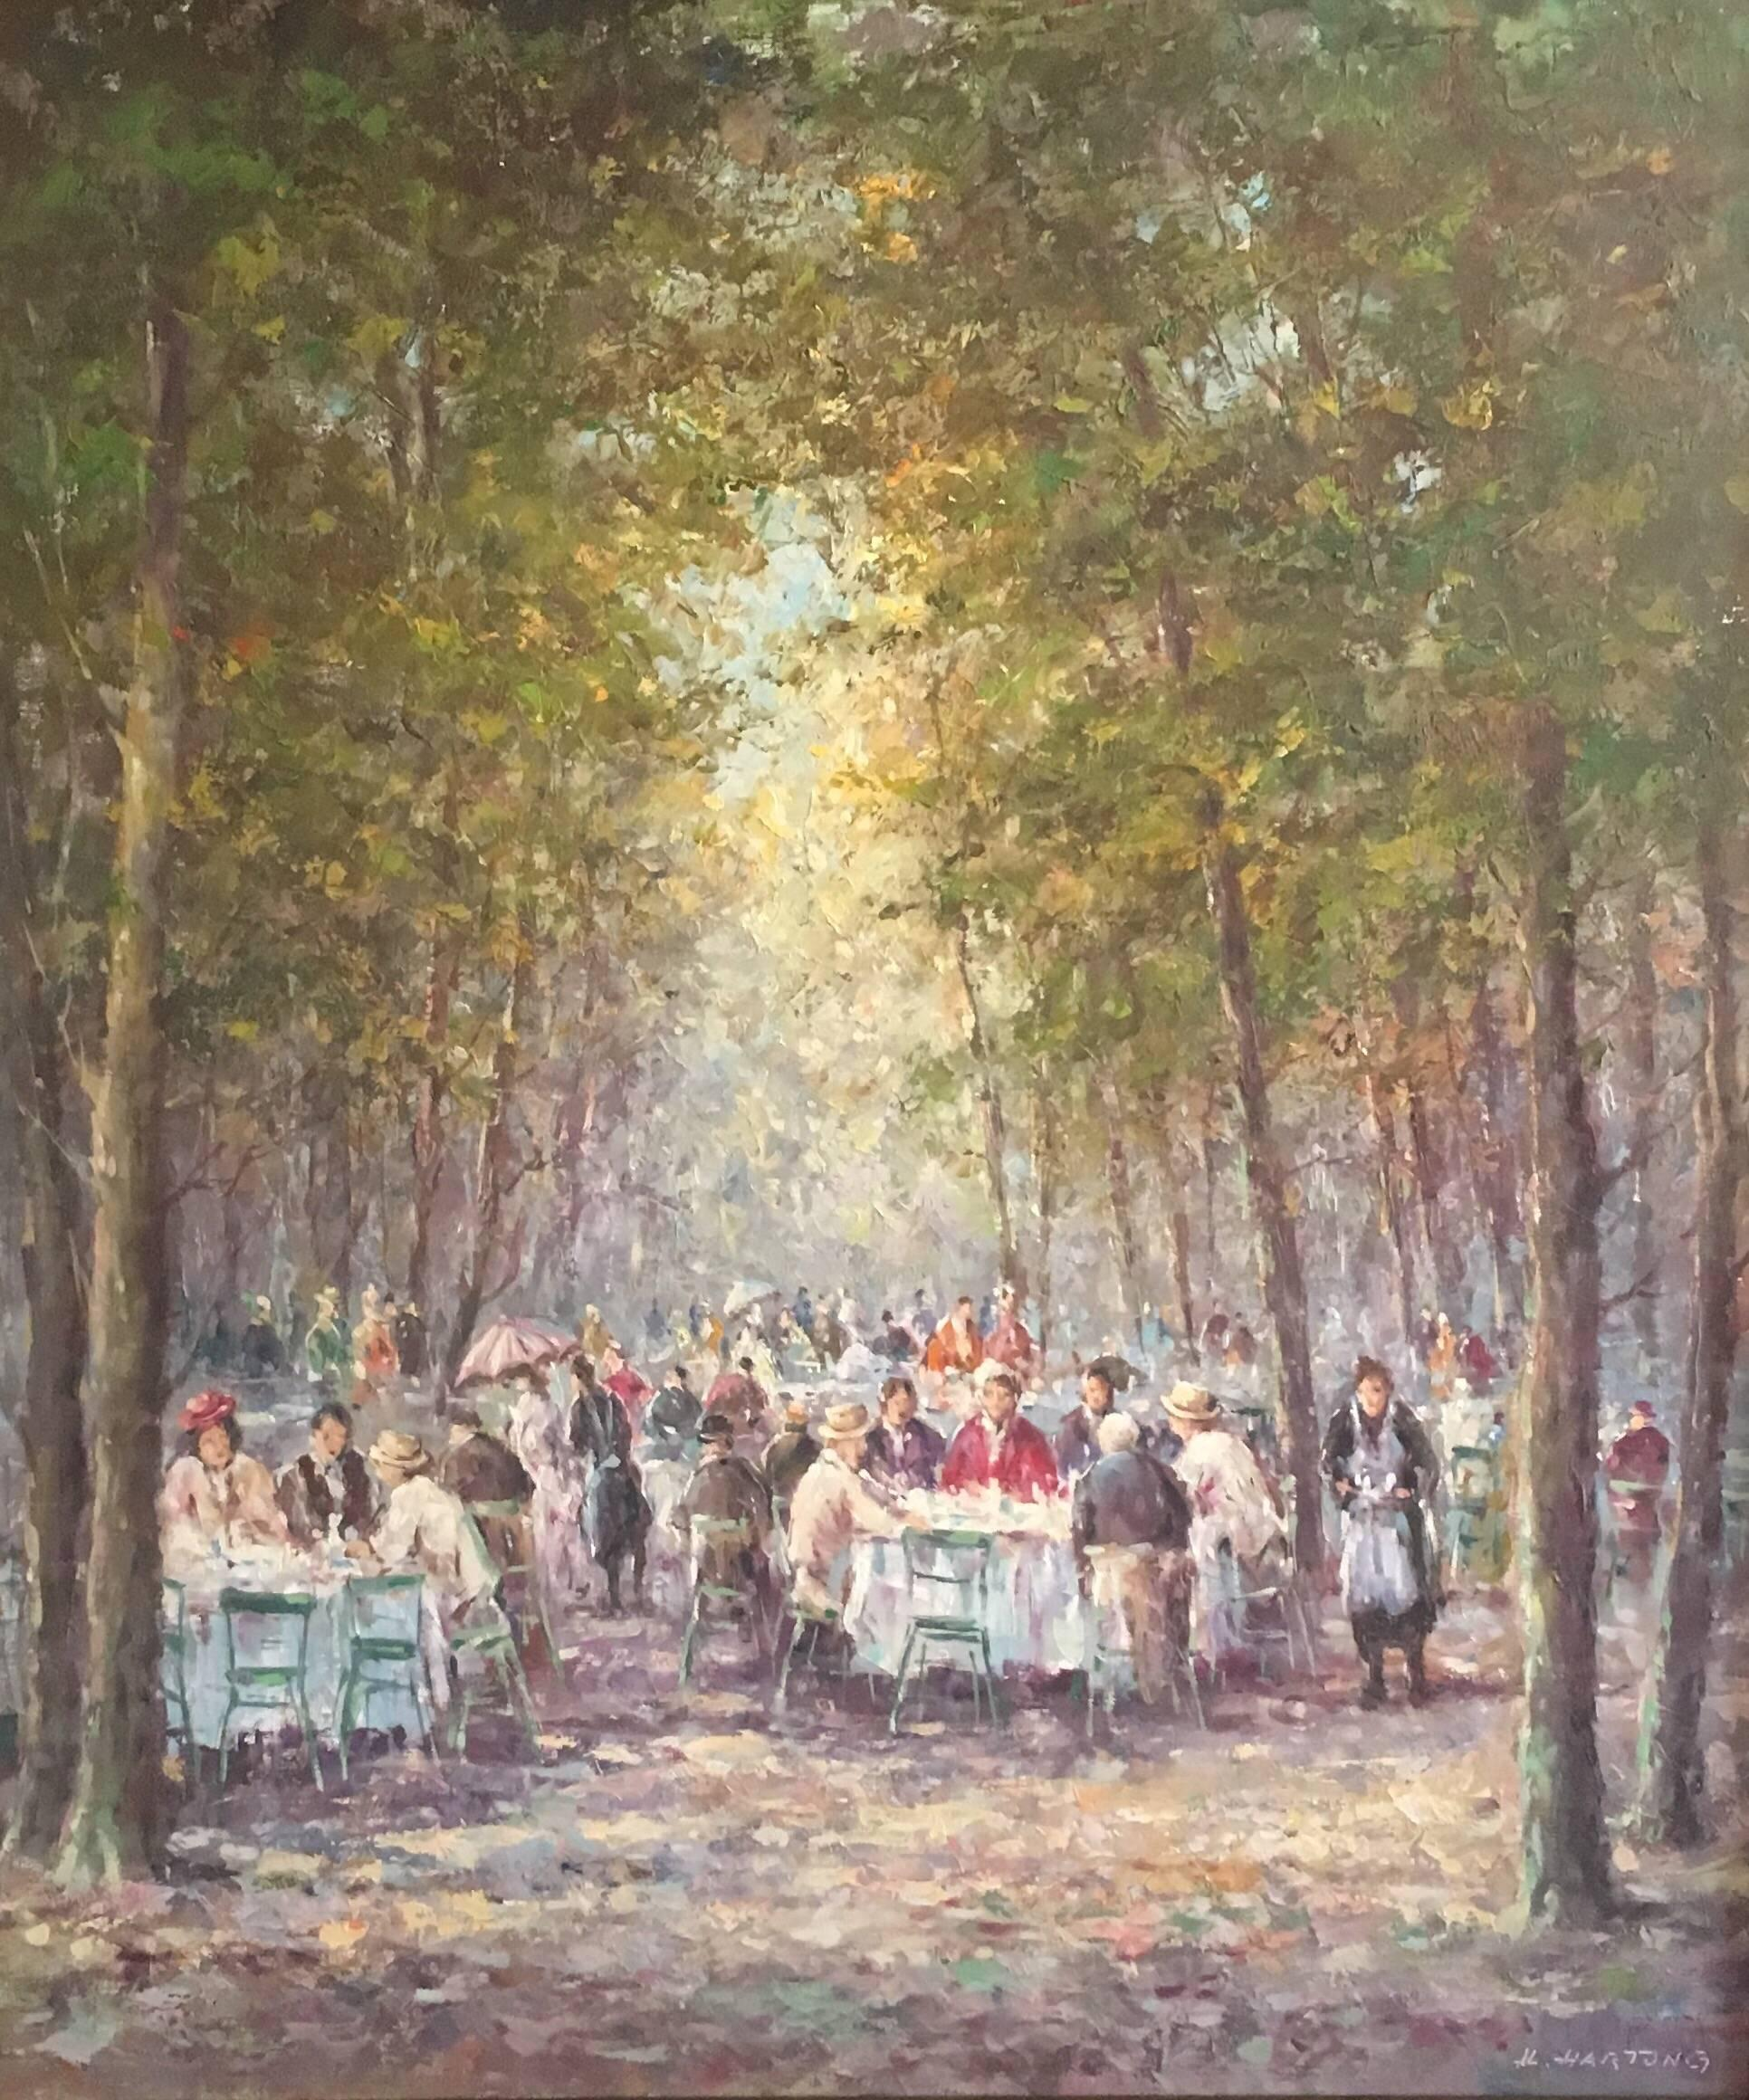 Figures in Busy Park Cafe Scene, Signed Oil Painting